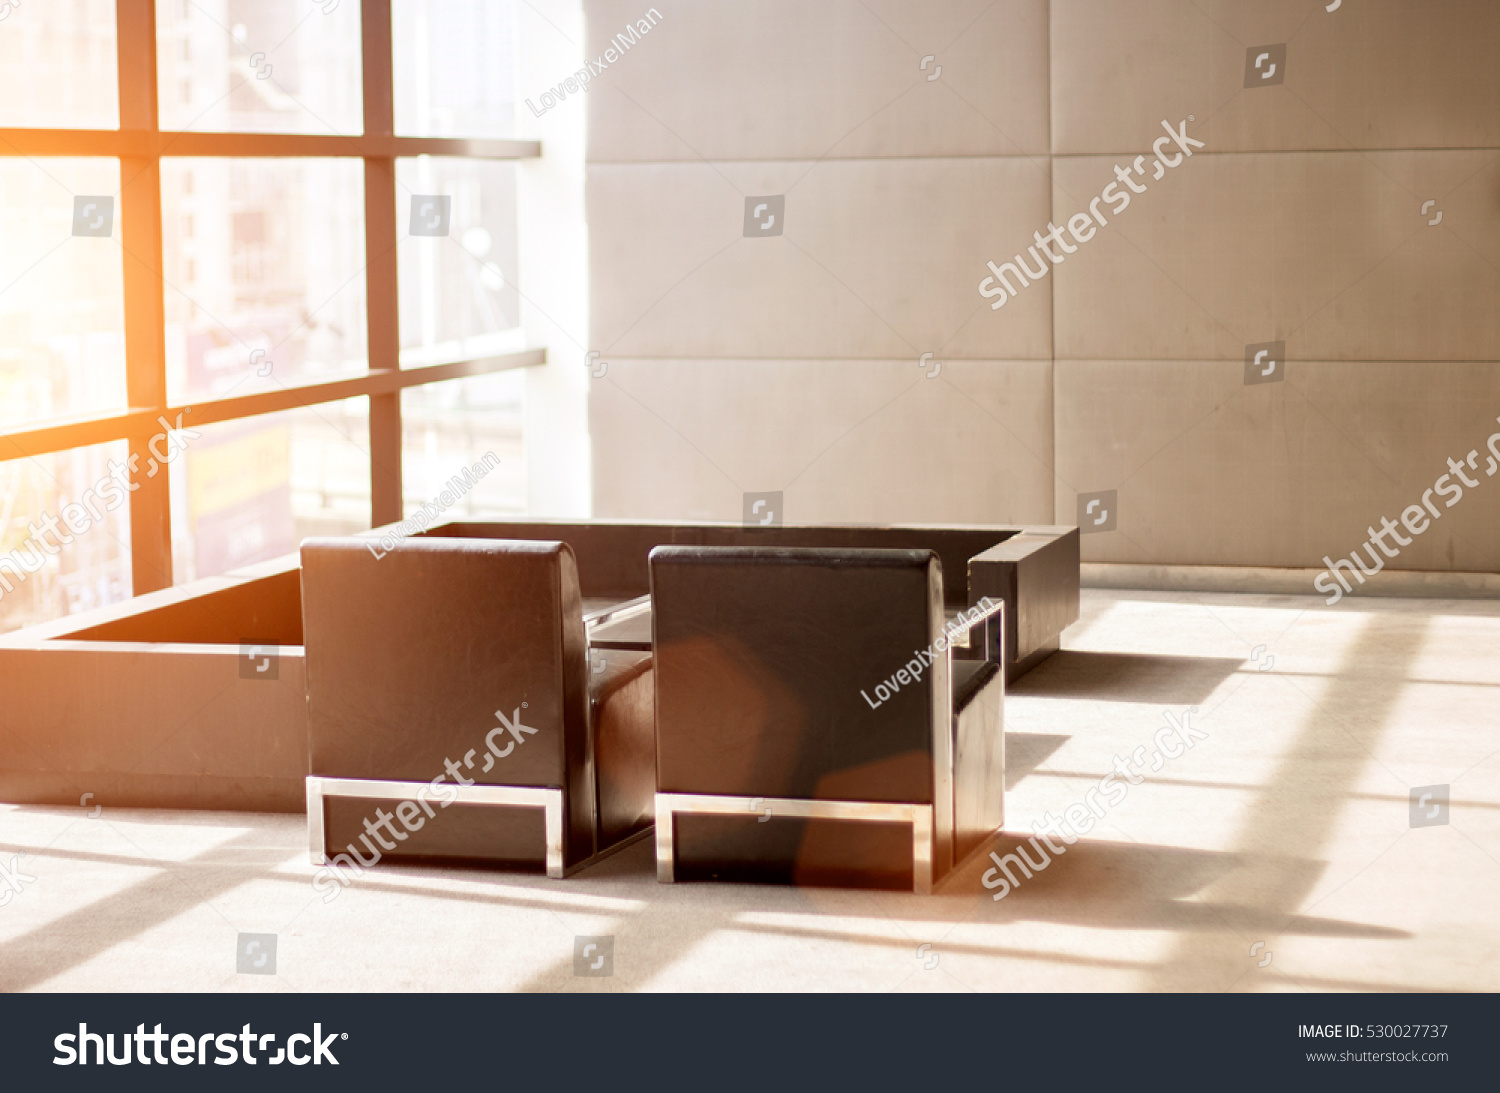 Modern interior meeting room in warm morning light with lens flare for background